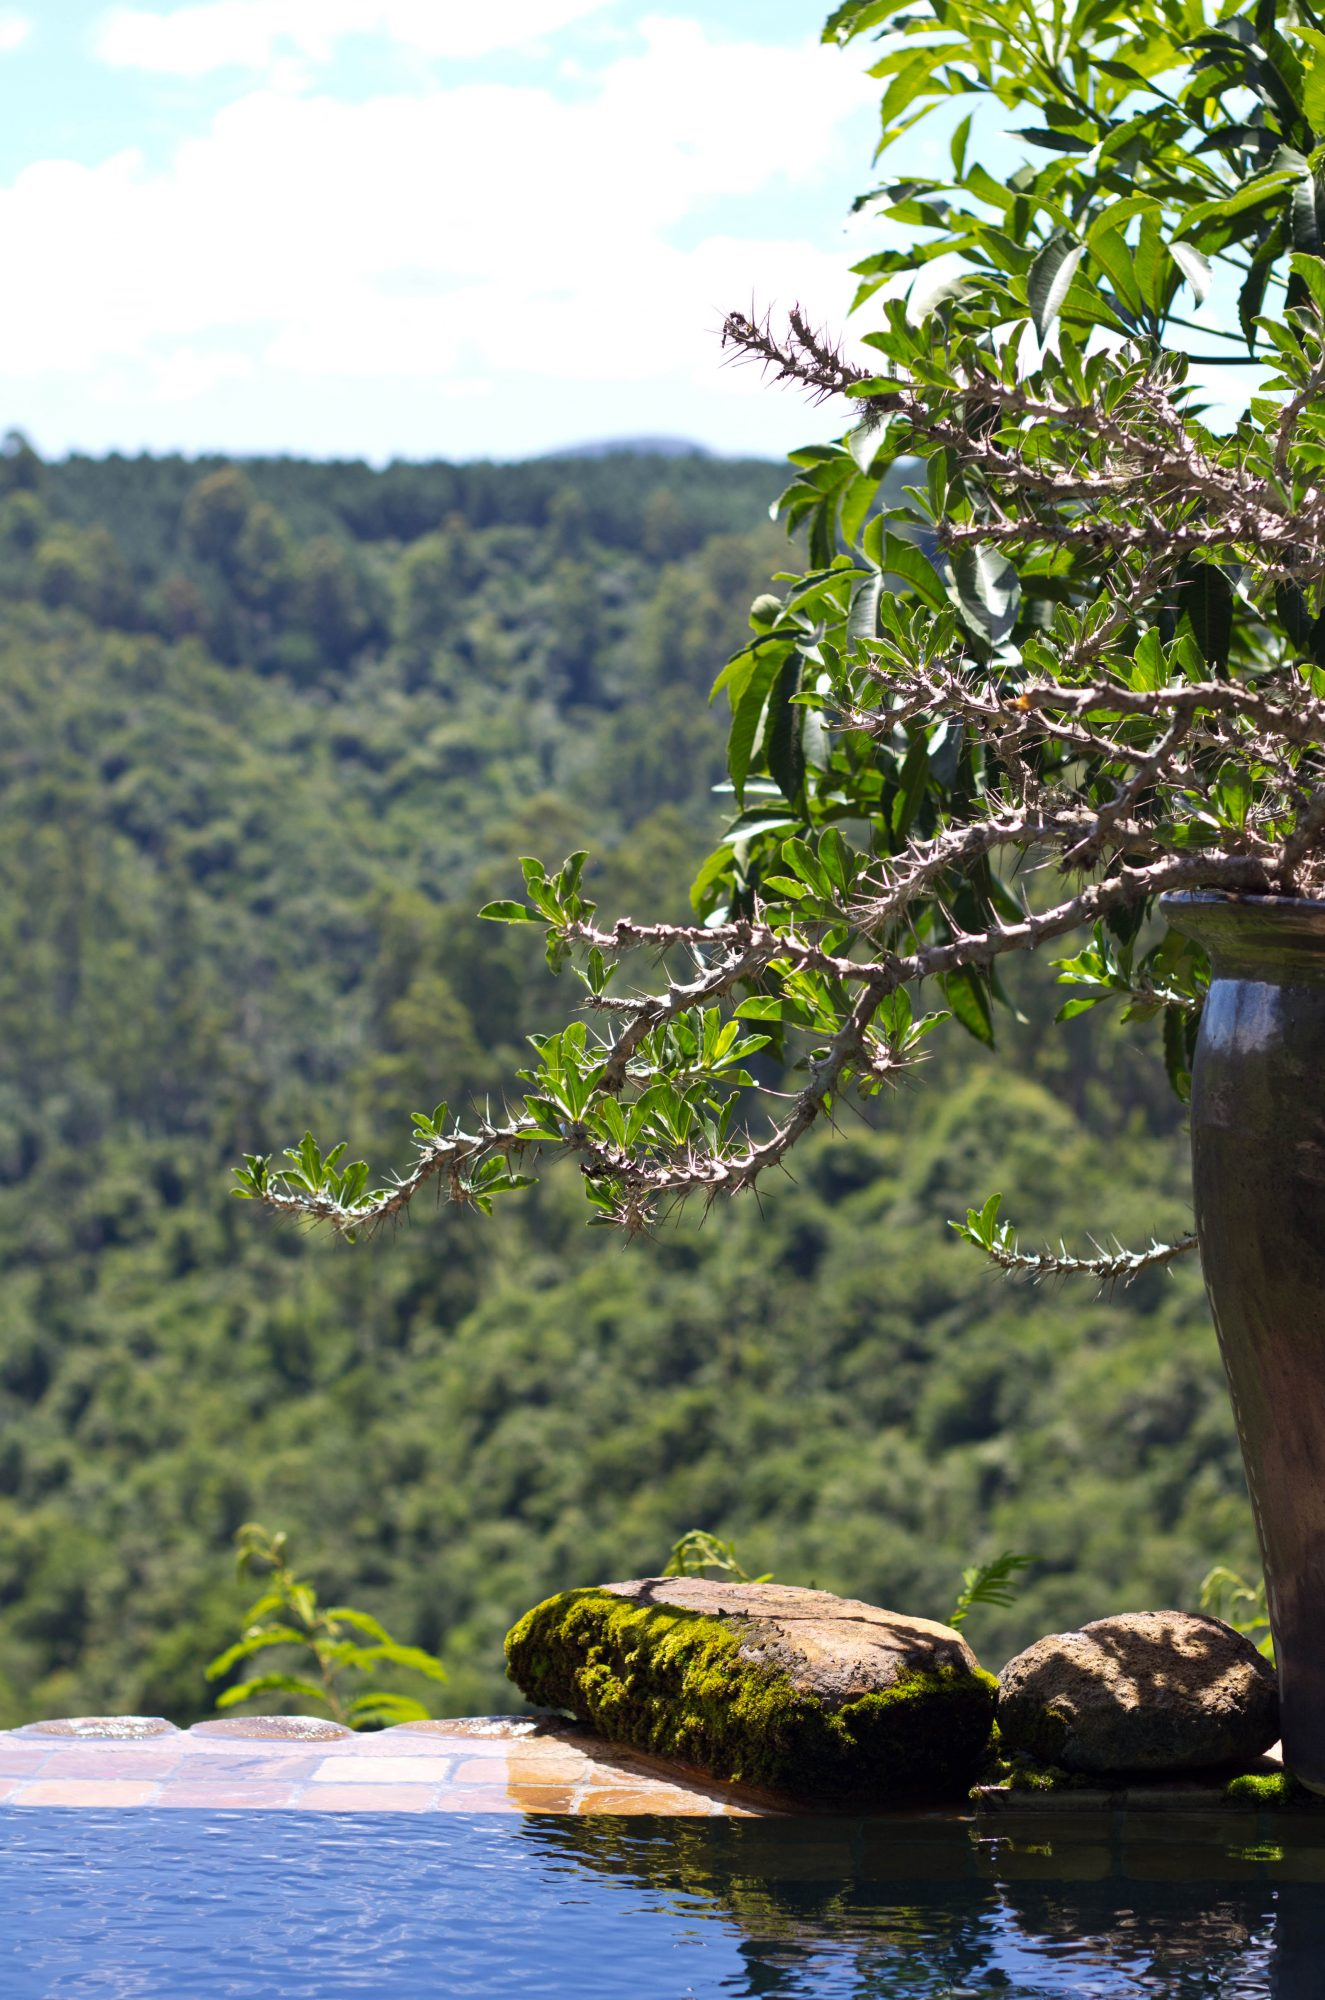 Tanamera Lodge, Hazyview, Mpumalanga (9)